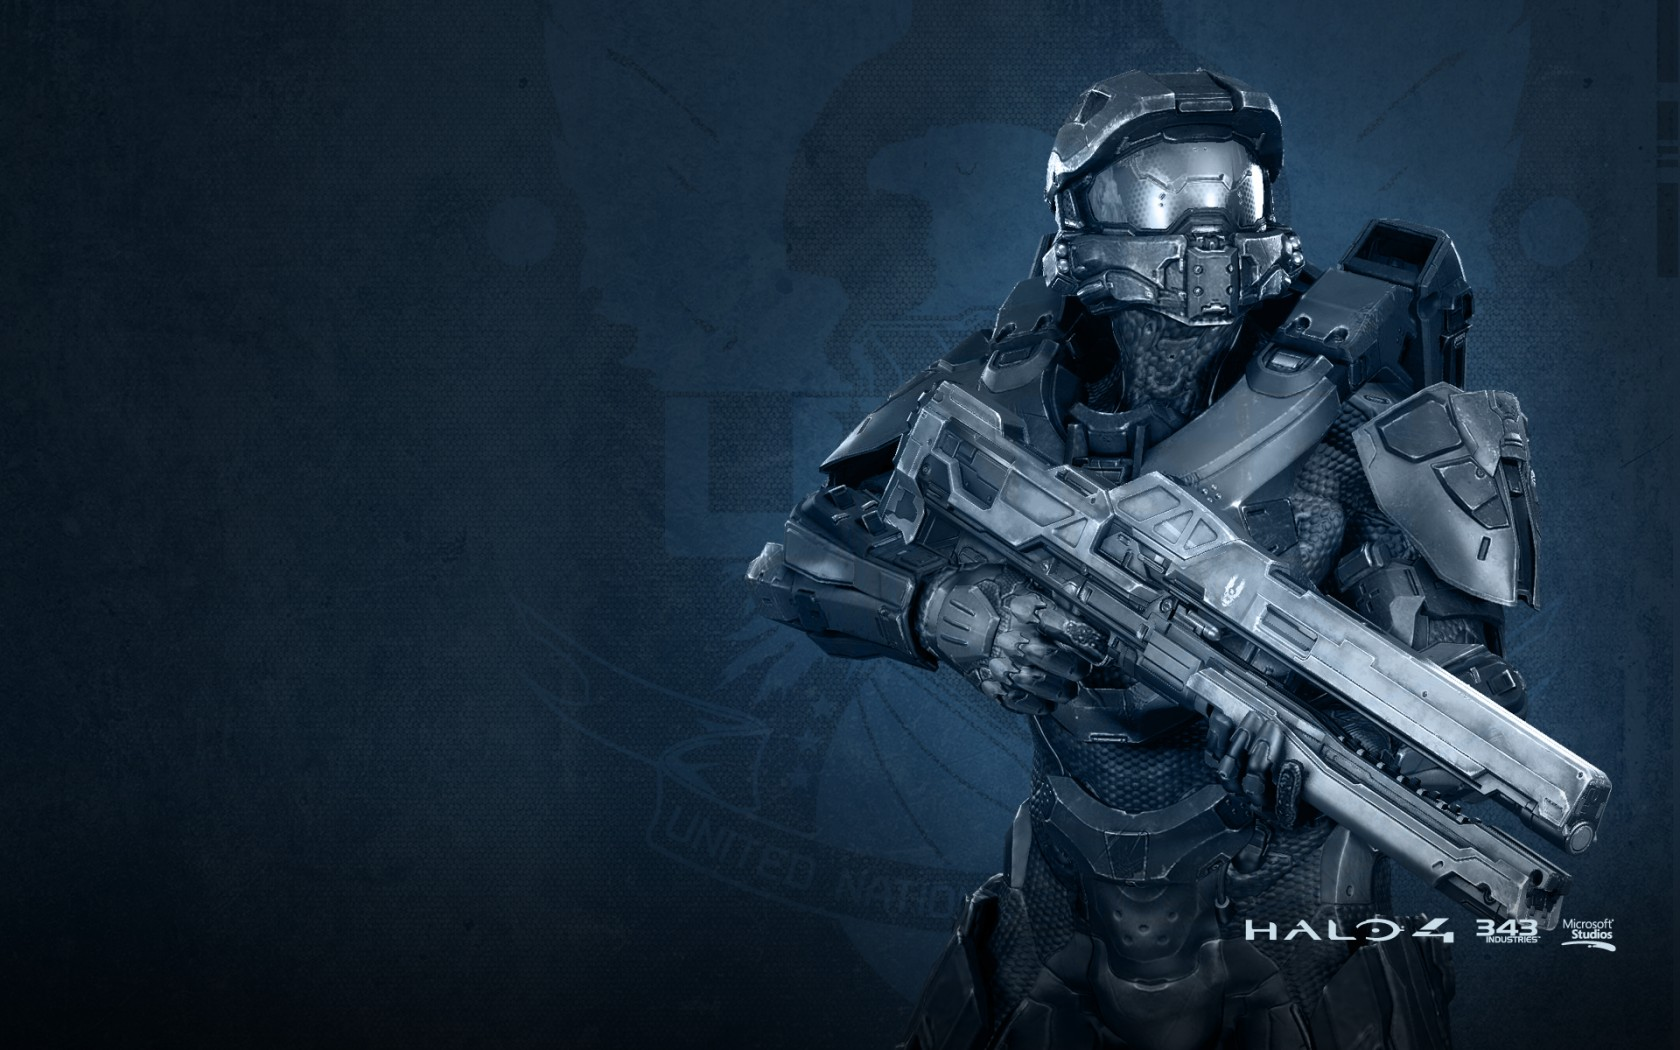 Halo Wallpaper Hd Halo 4 Master Chief Wallpapers Hd Wallpapers Id 12149